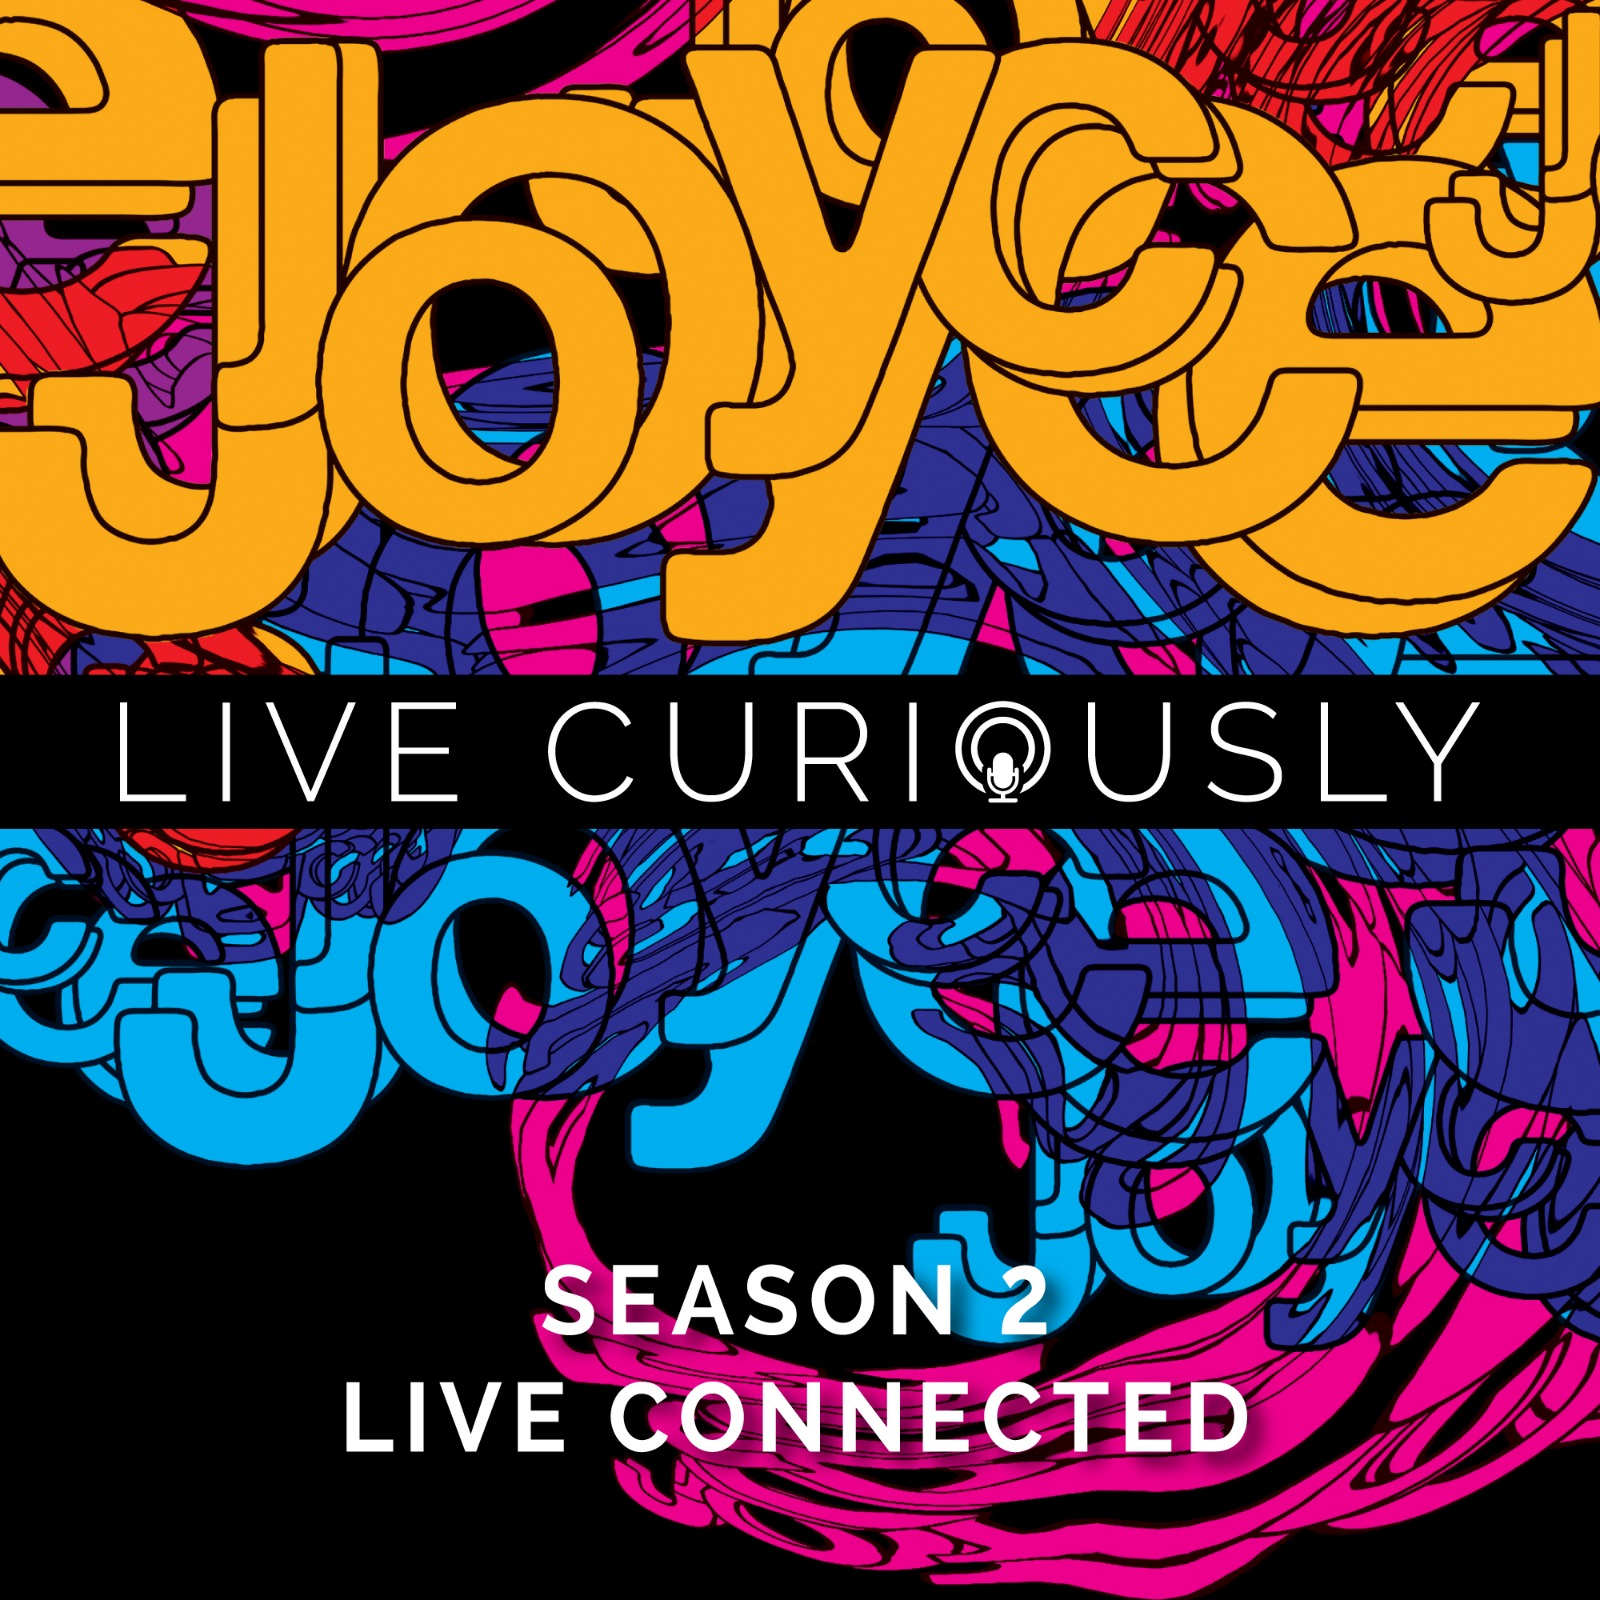 JOYCE PODCAST: LIVE CONNECTED